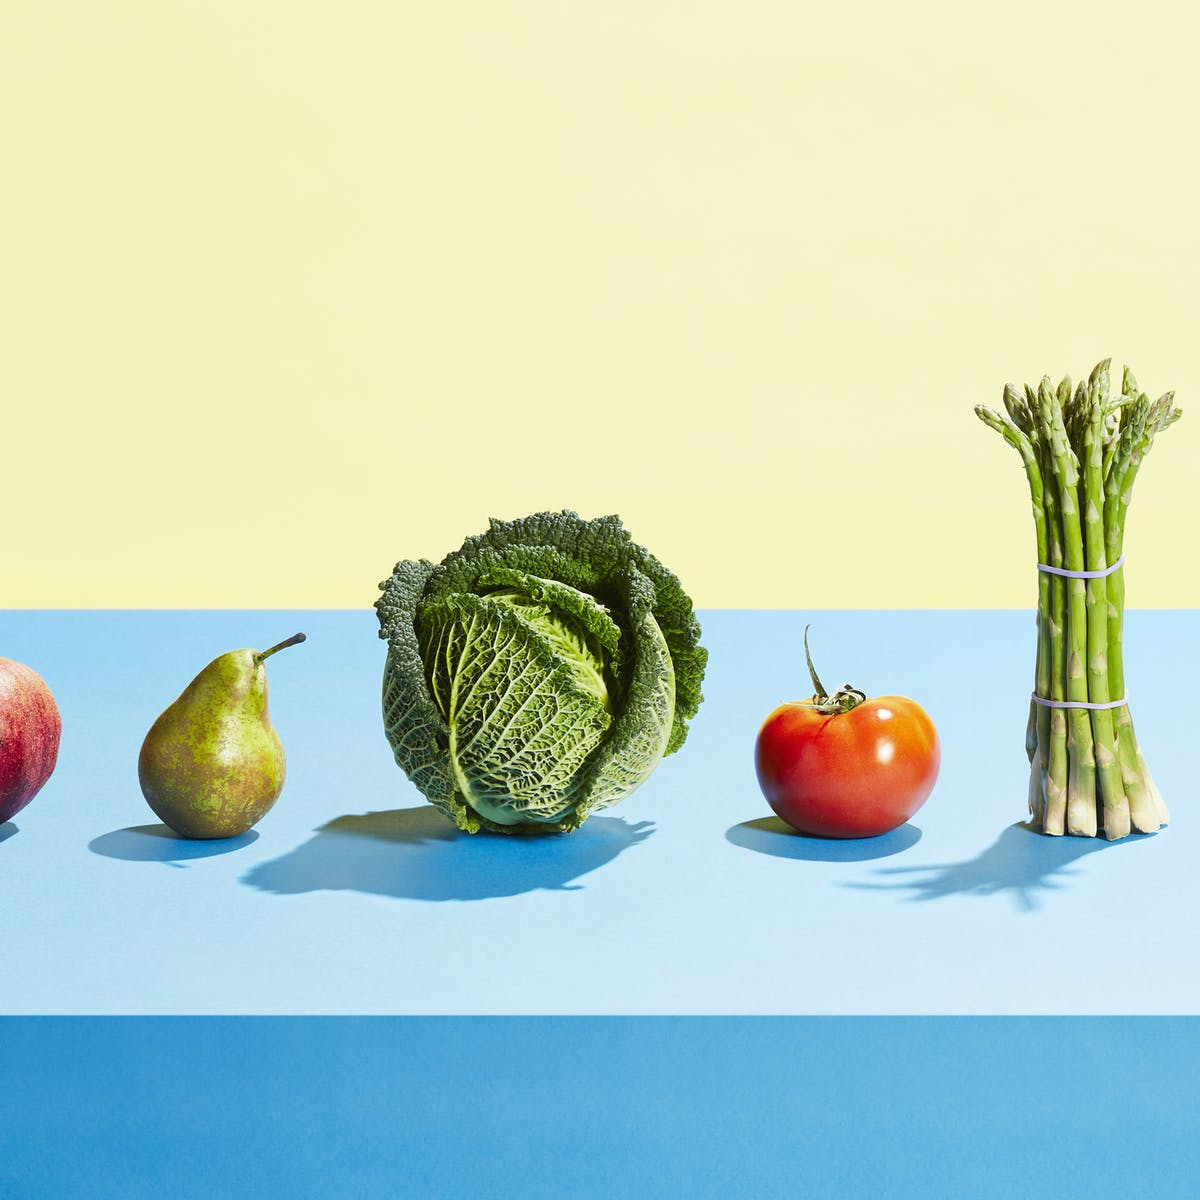 Way too many people can't afford a sustainable diet